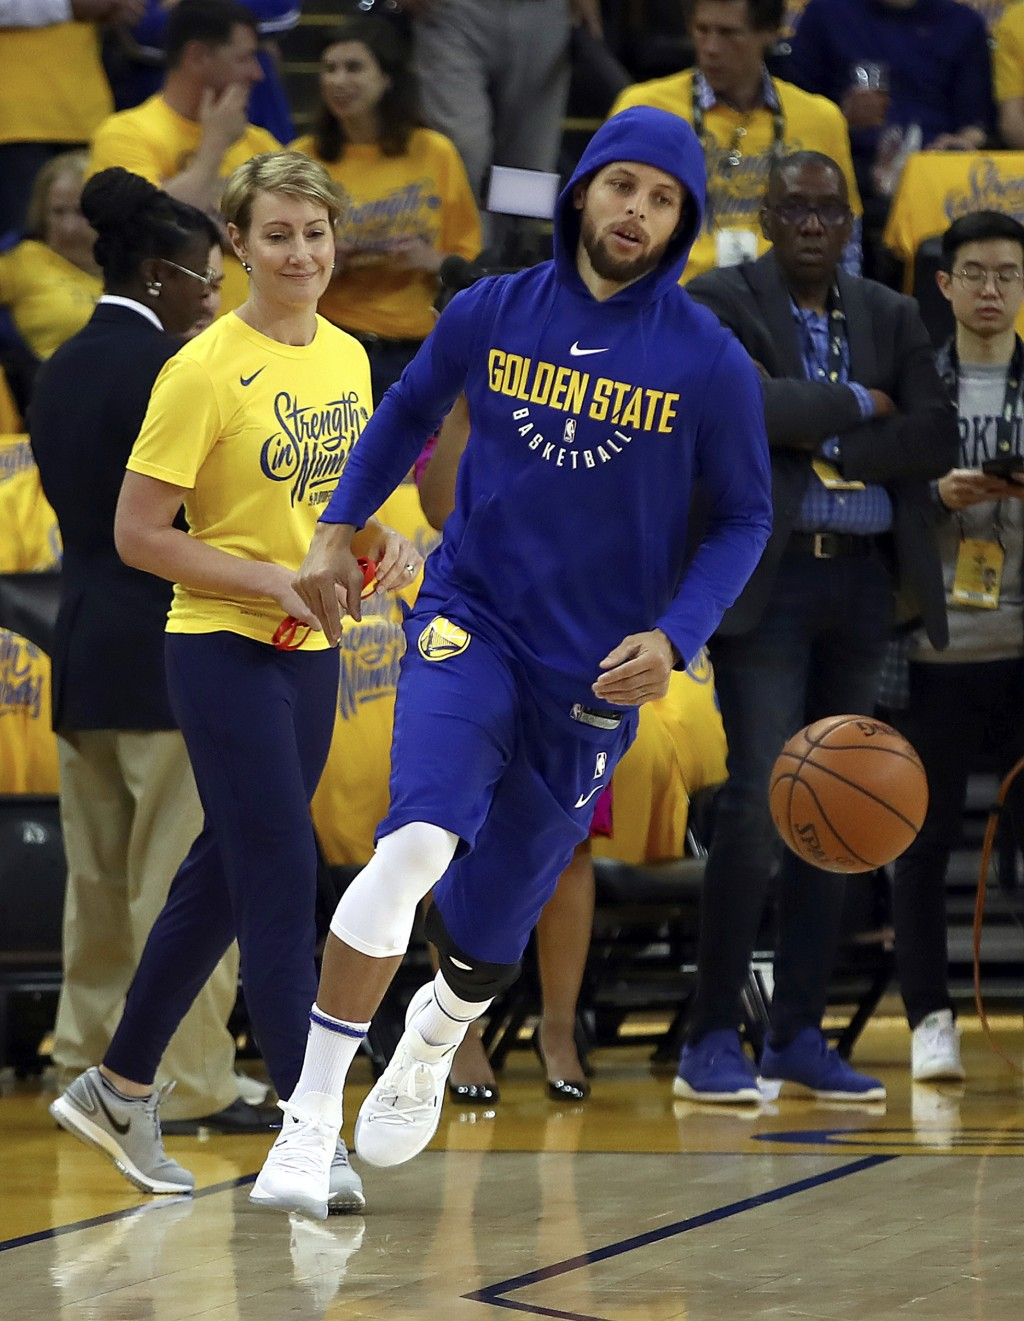 Golden State Warriors' Stephen Curry warms up prior to Game 1 of a first-round NBA basketball playoff series against the San Antonio Spurs Saturday, A